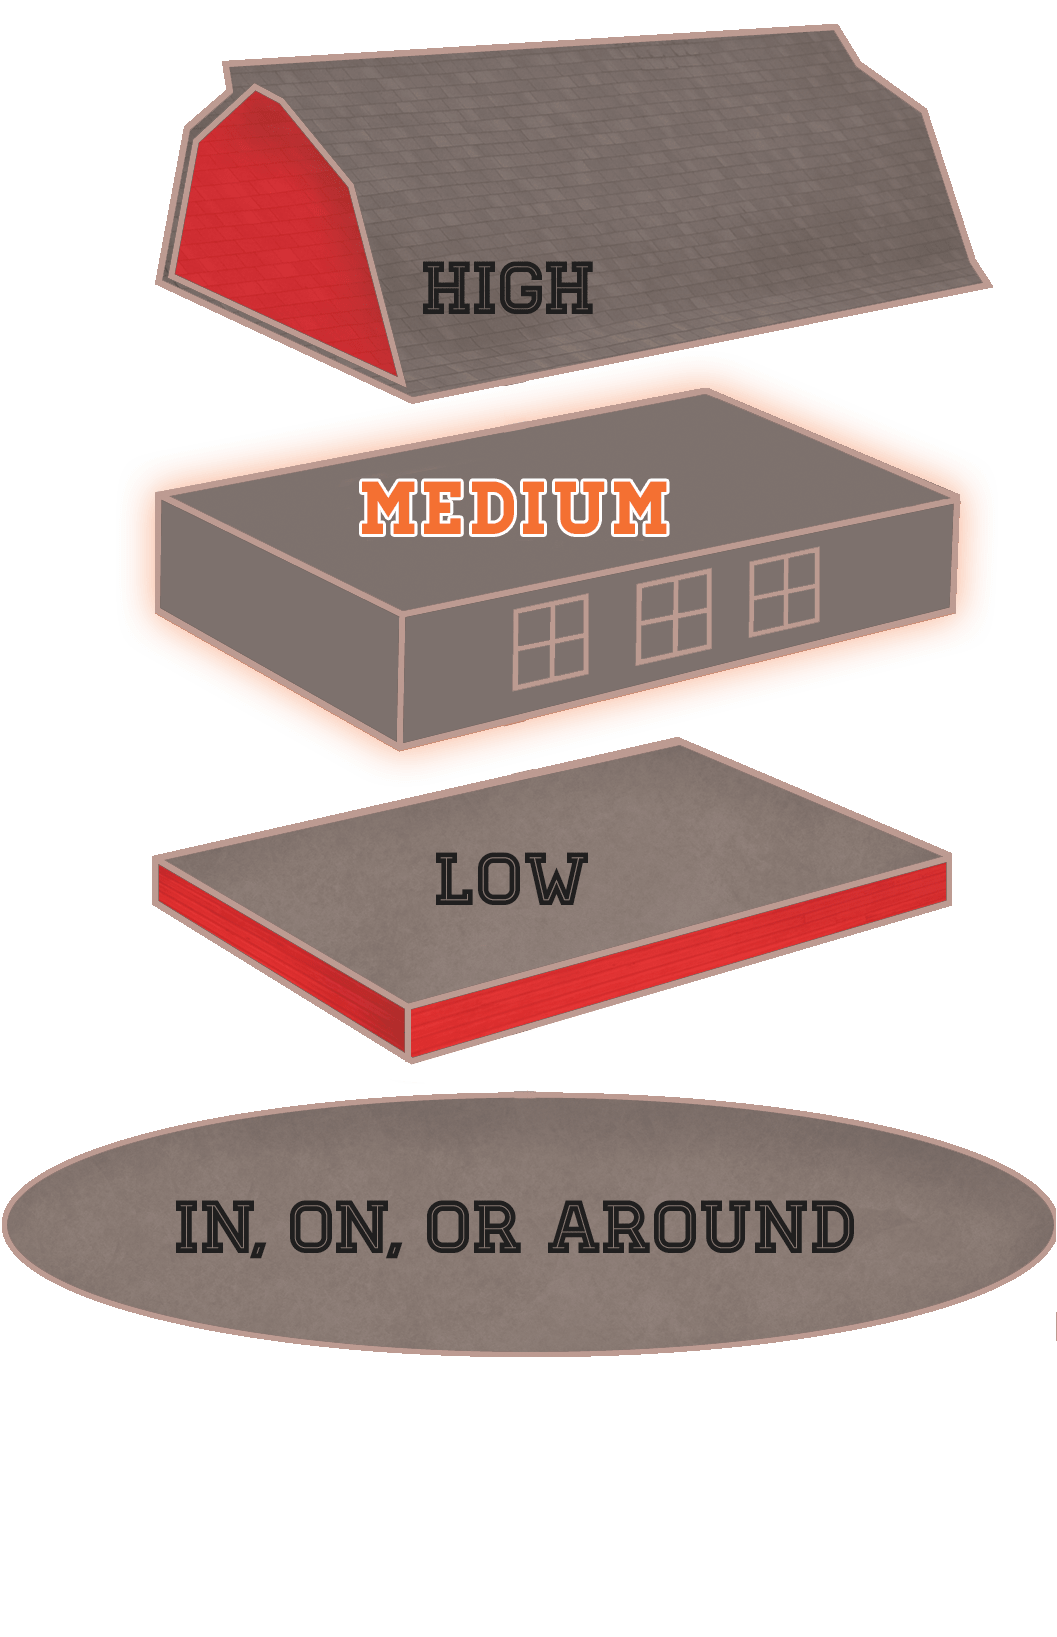 illustration of barn sliced into four section high medium low and in, on and around